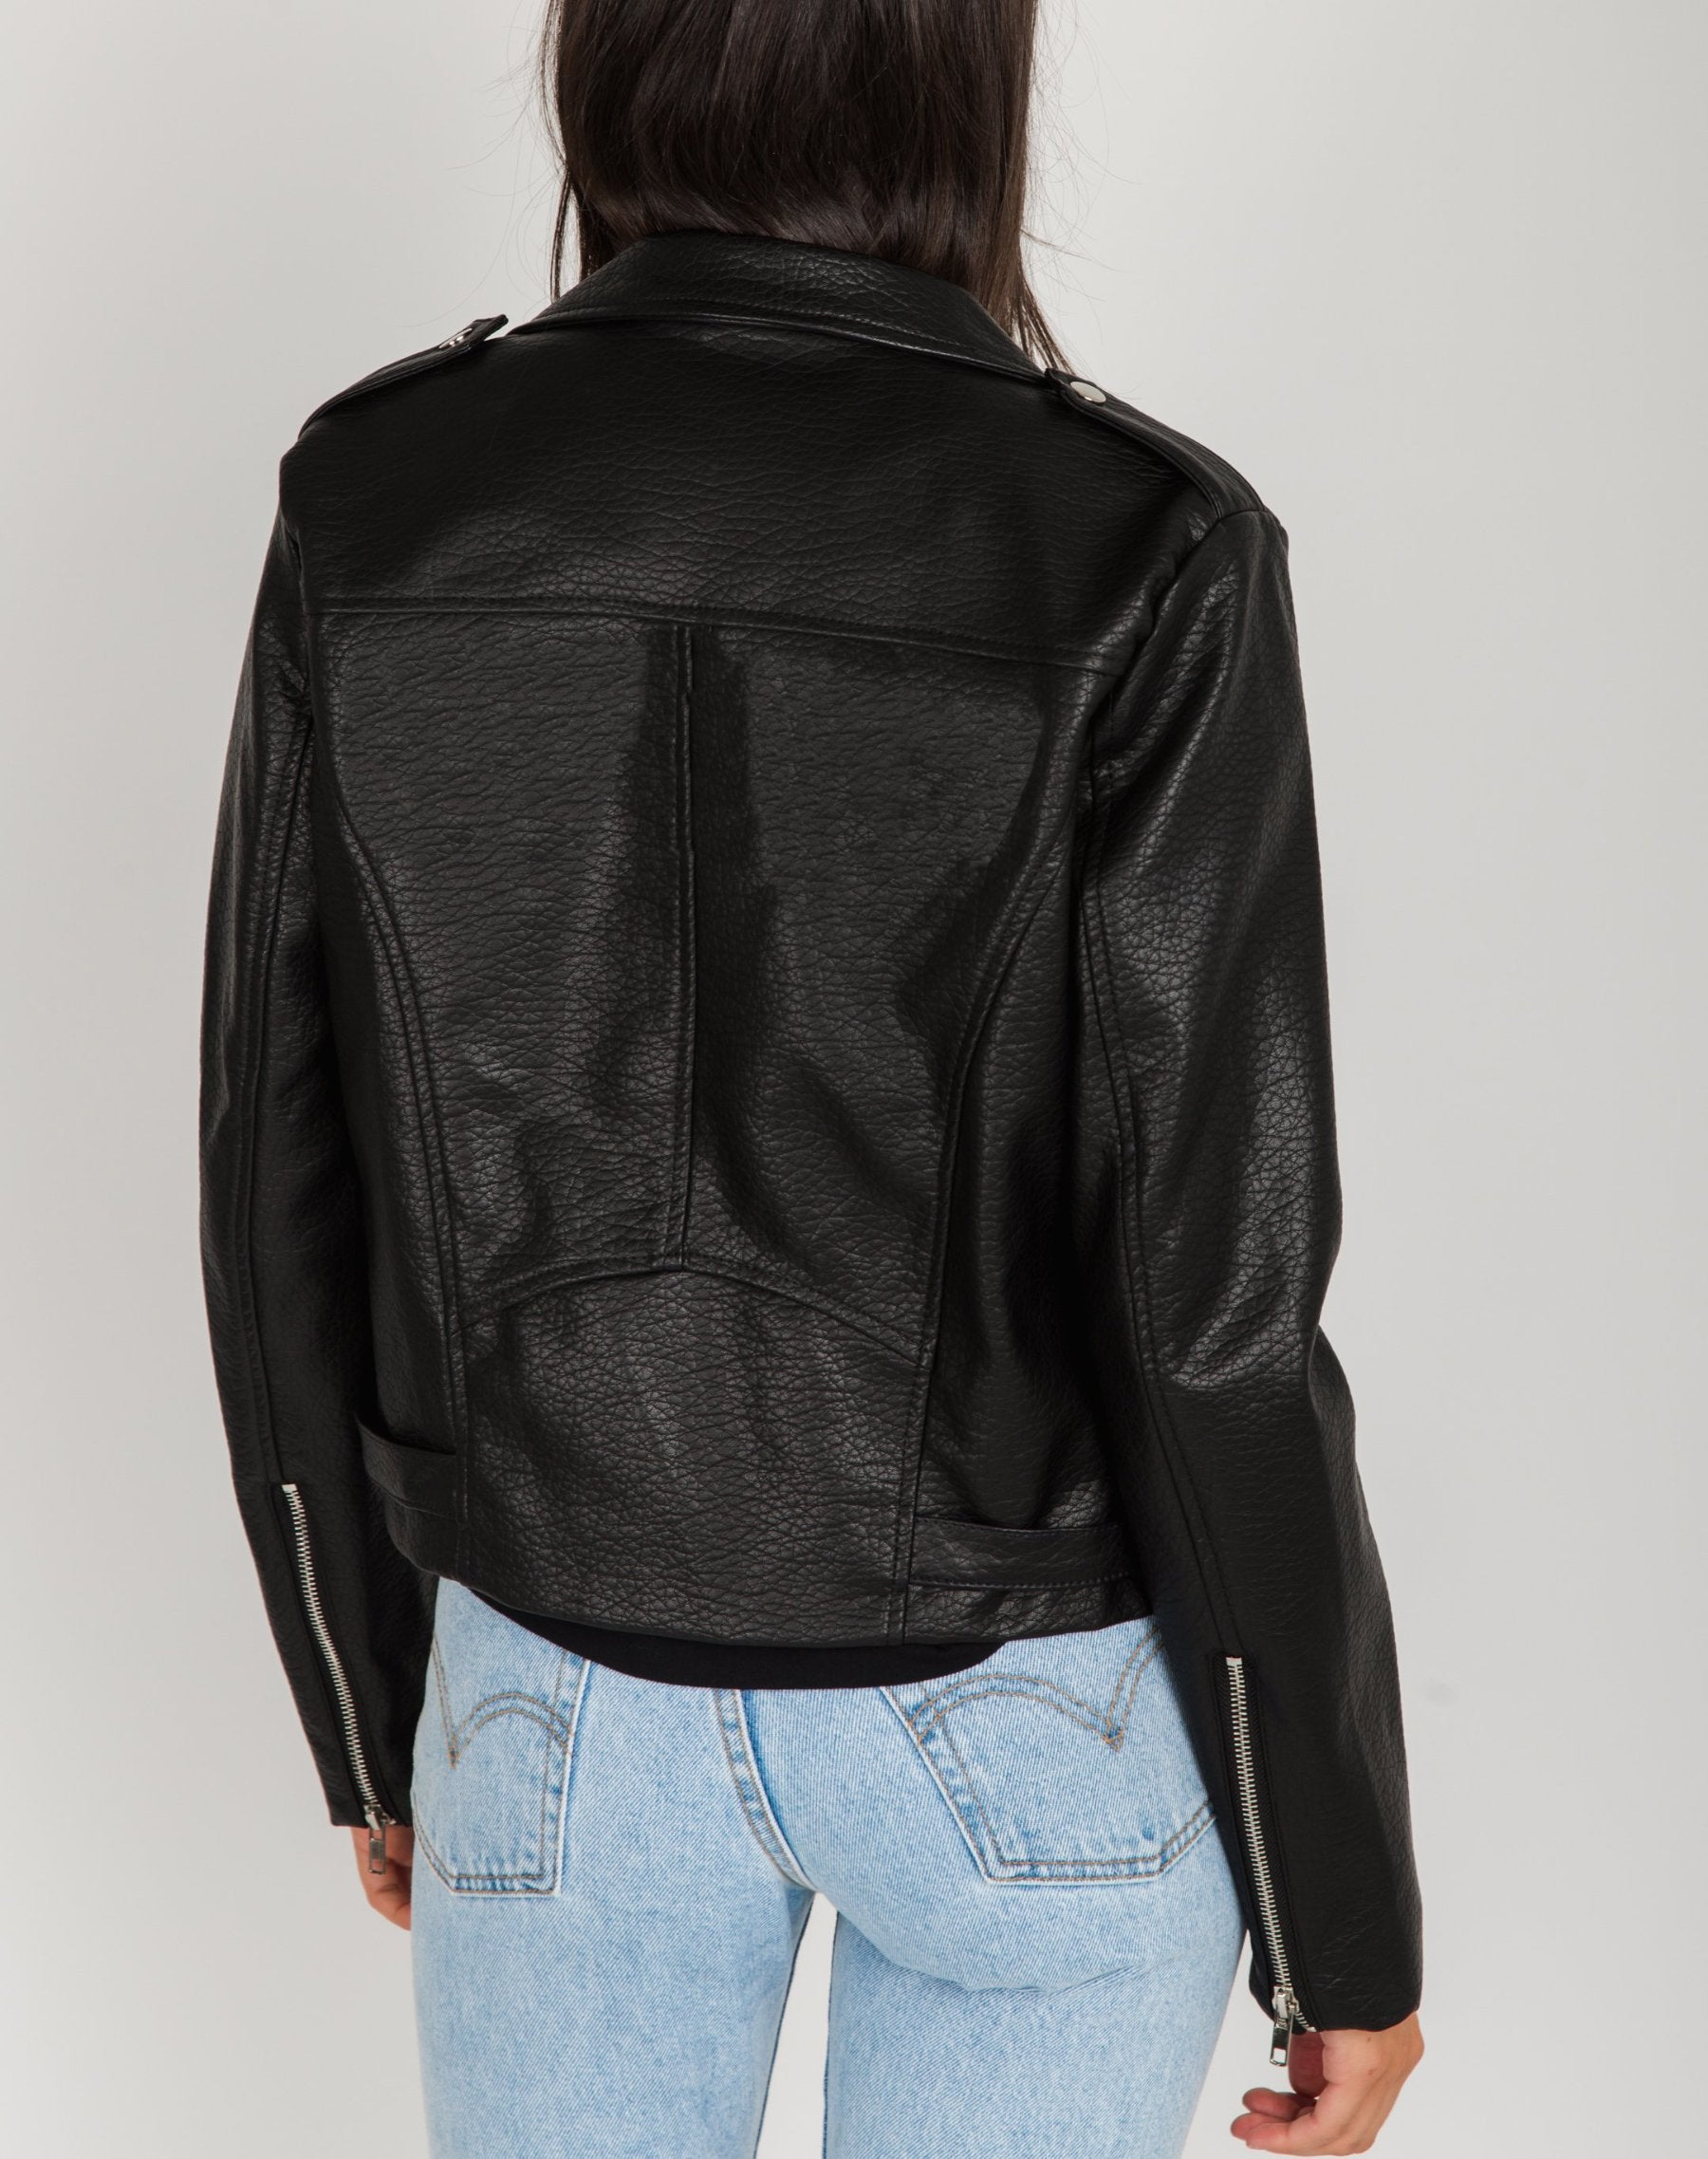 Photo of the back of the Florence vegan leather moto jacket in black by Brunette the Label.